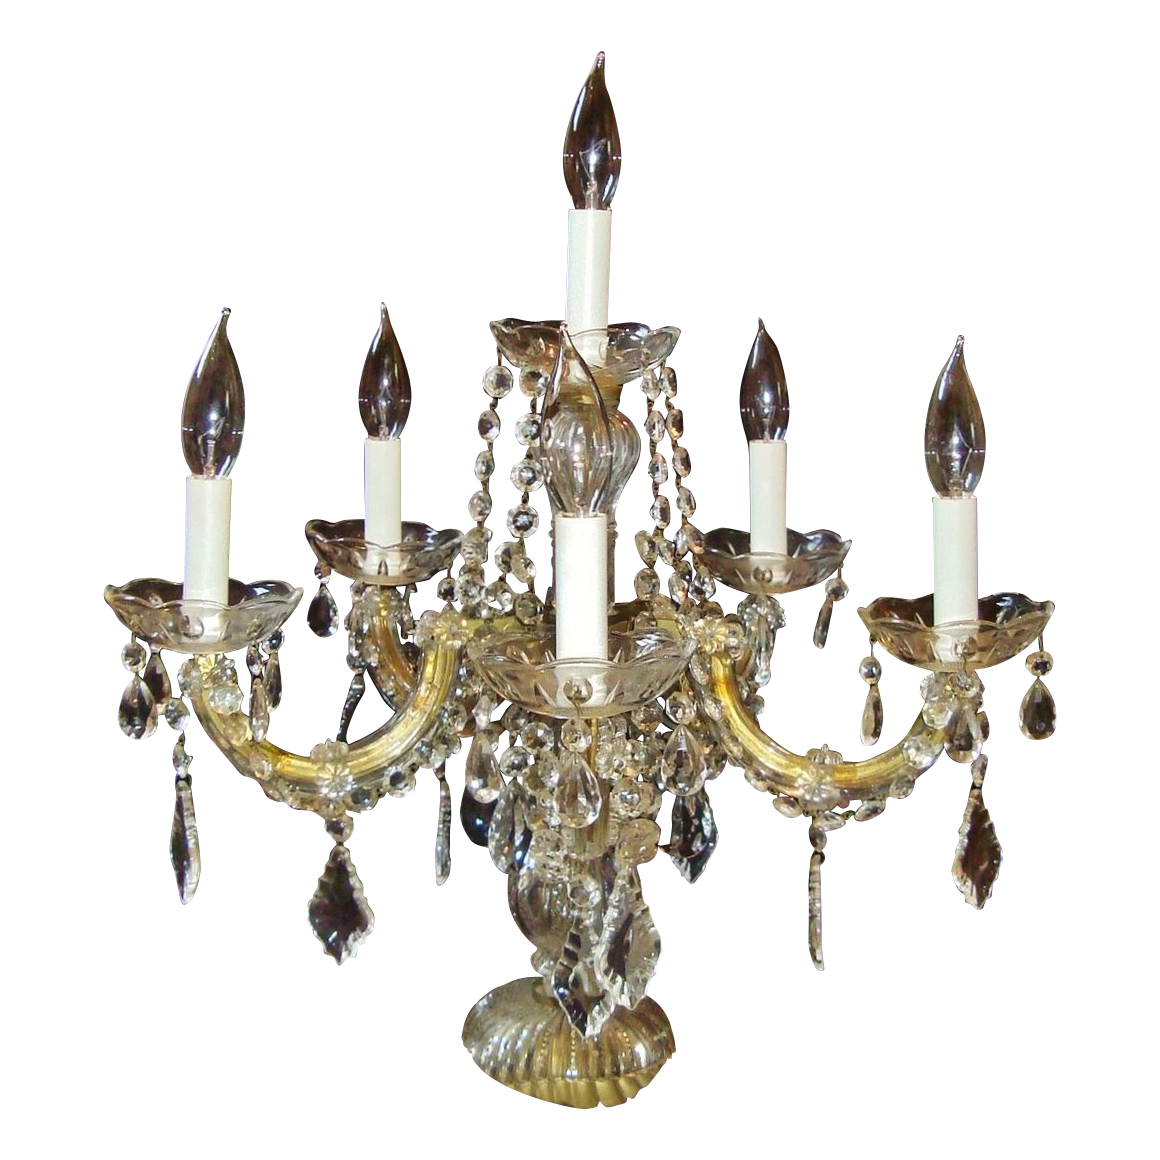 Vintage Art Deco 6 Light Beaded Prism Italian Glass Candelabra Lamp Candelabrum Lusters Lustres Shabby Cottage Chic